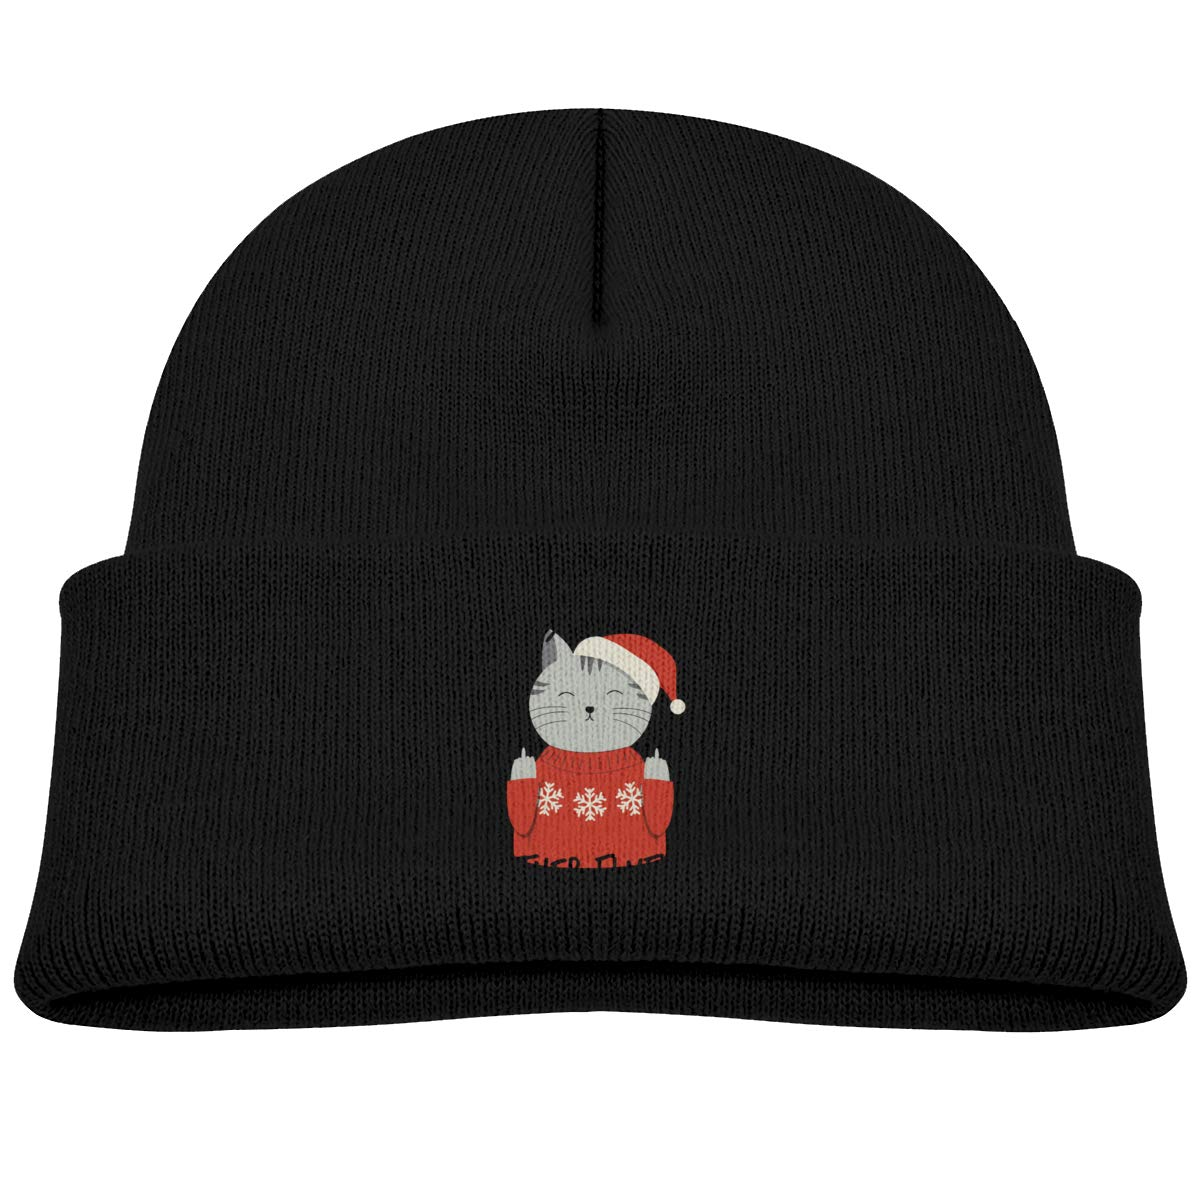 Meowy Christmas Mother Fluffer Infant Skull Hat Kids Beanies Cap